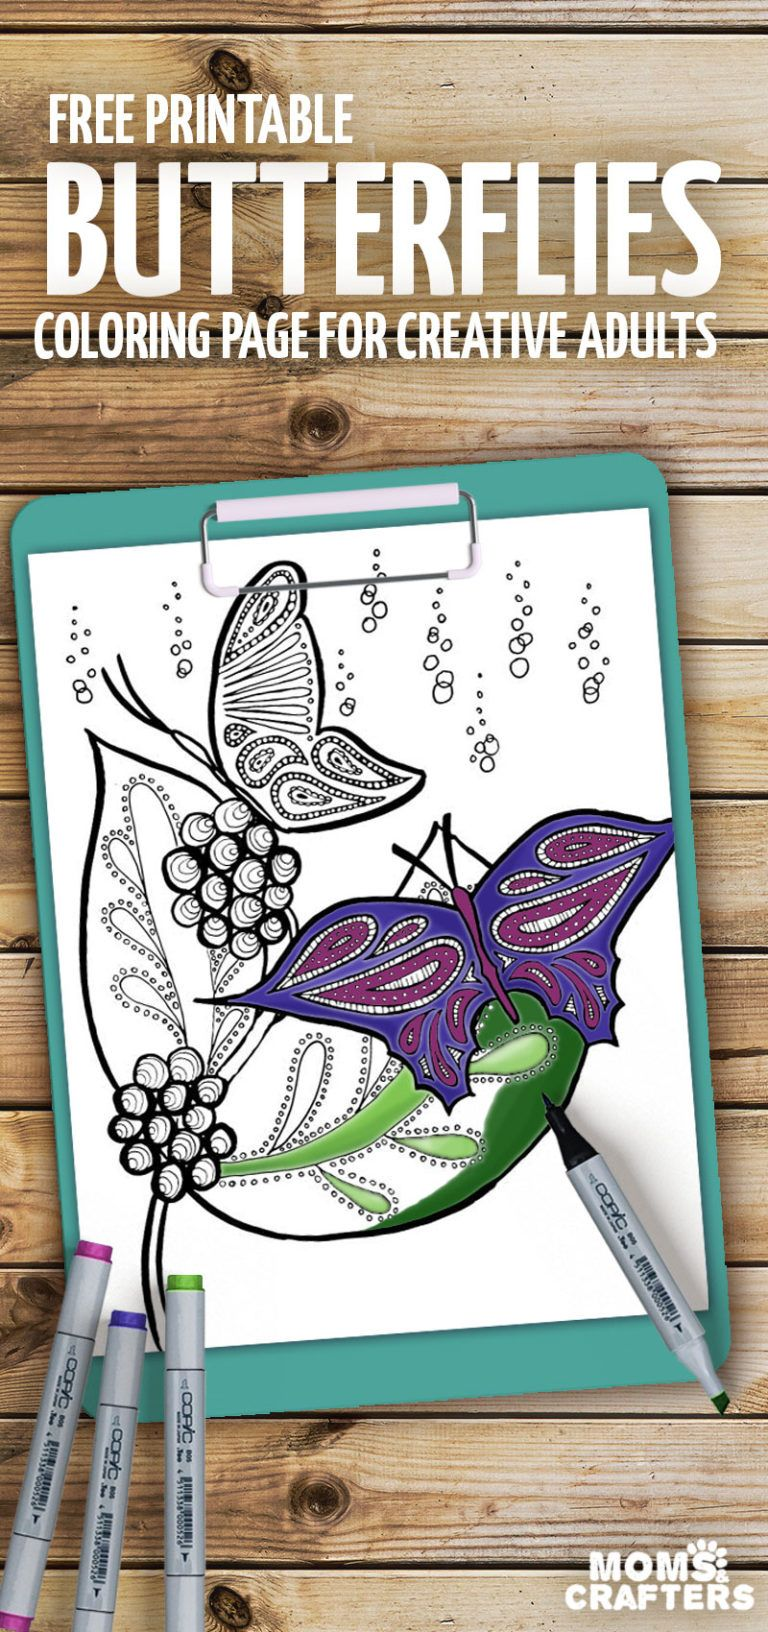 Butterflies Coloring Pages Free Printables For Adults Moms And Crafters Butterfly Coloring Page Coloring Pages Free Coloring Pages [ 1632 x 768 Pixel ]